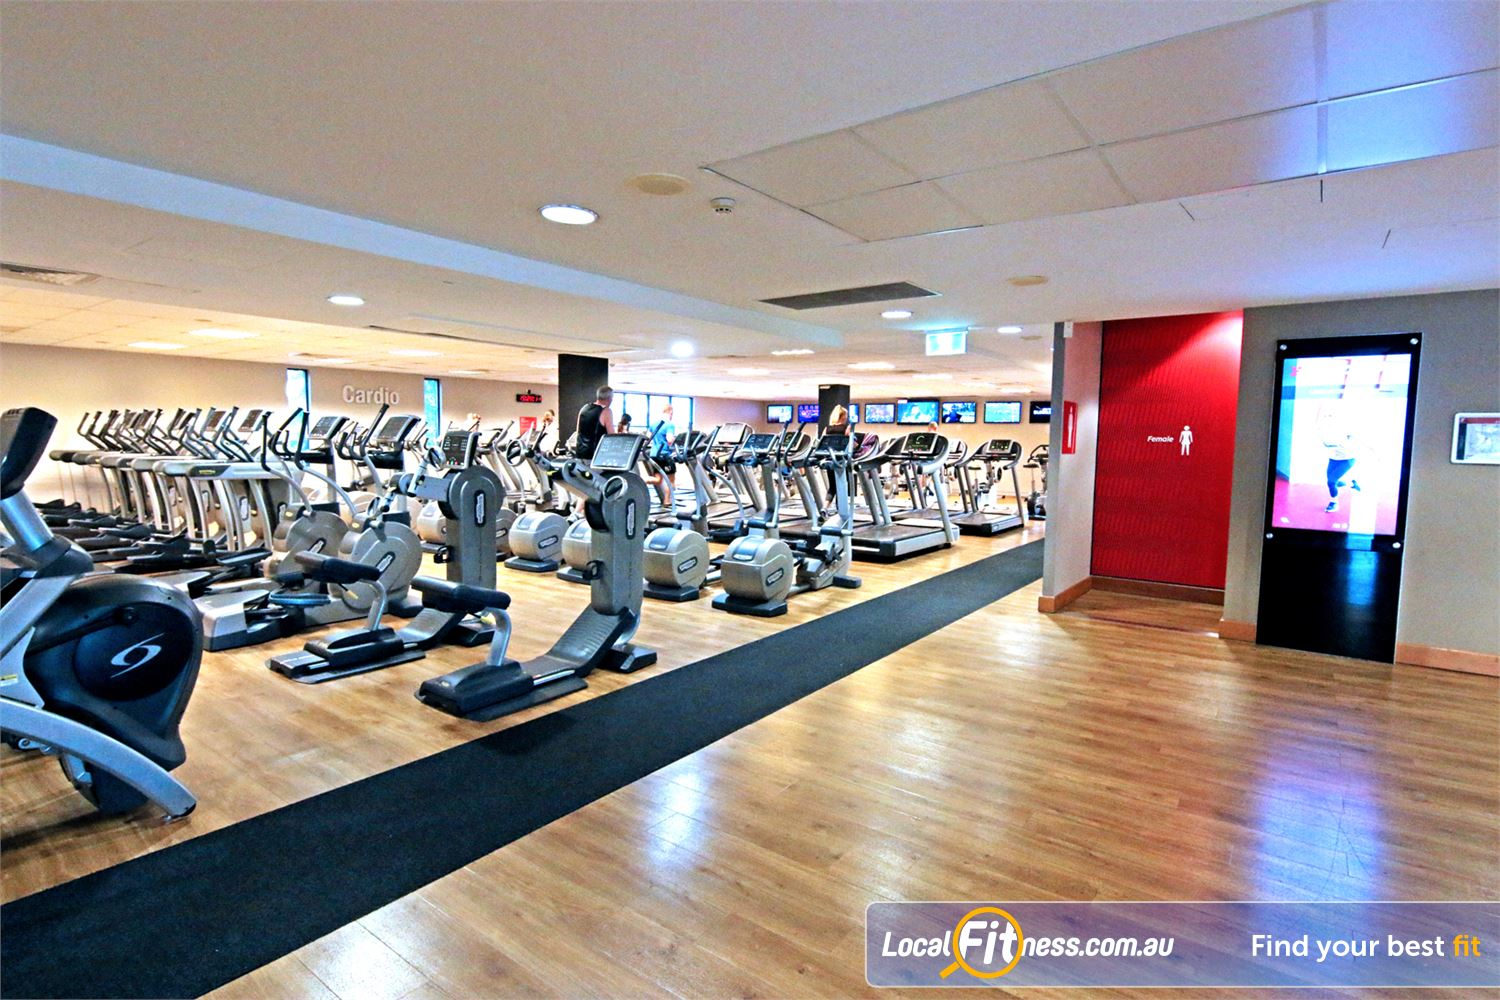 Fitness First Carindale The state of the art cardio theatre in our Carindale gym.